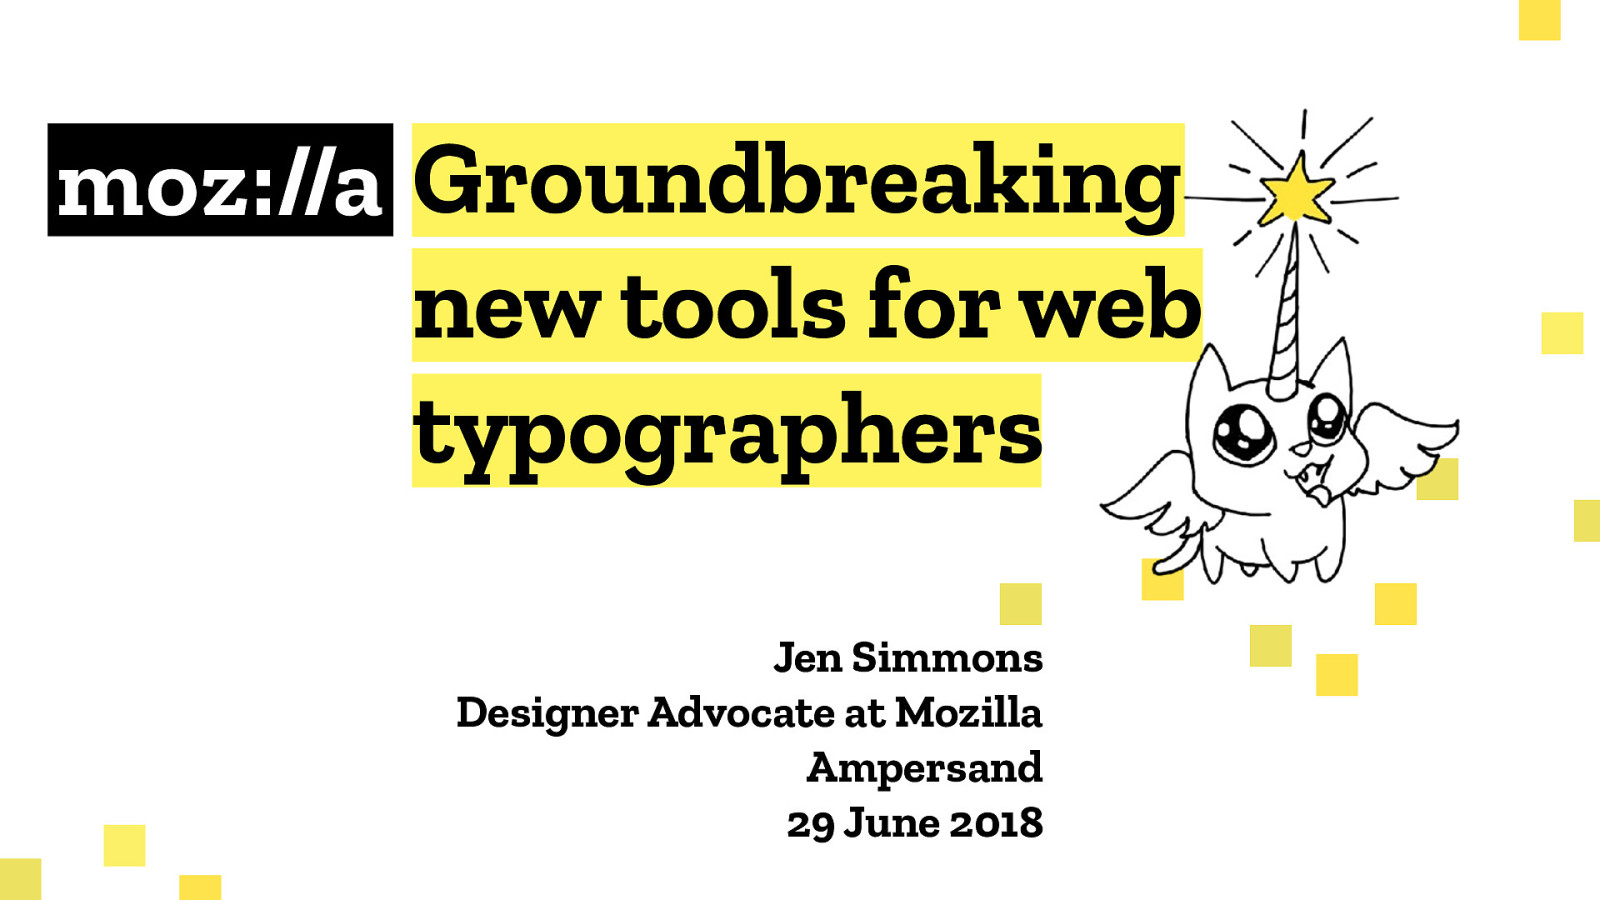 Groundbreaking new tools for web typographers